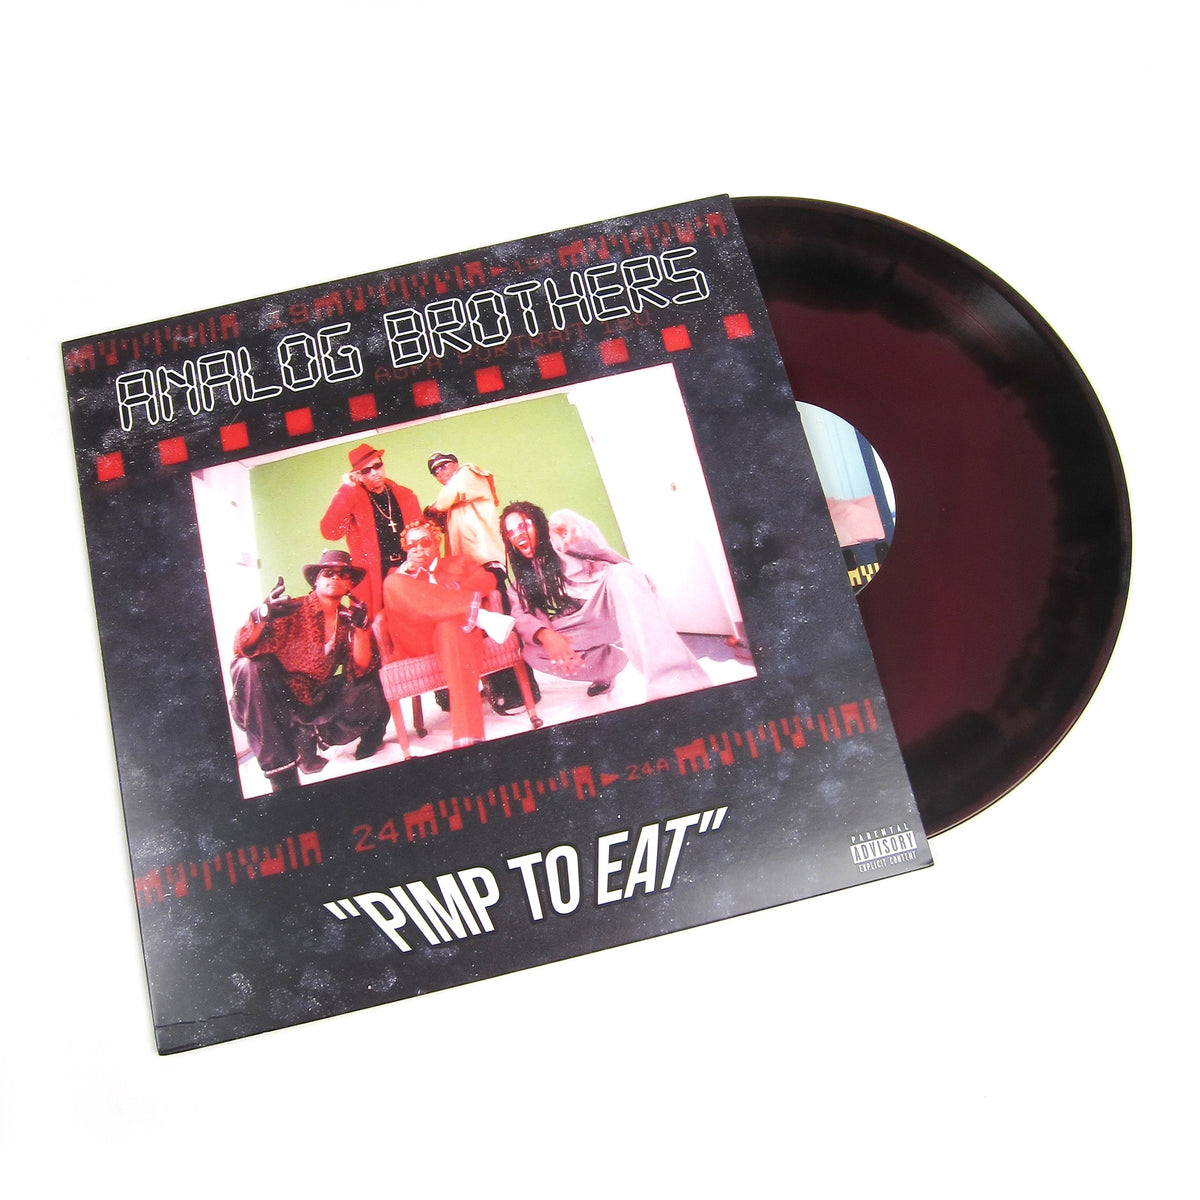 Analog Brothers: Pimp To Eat (Kool Keith & Ice-T, Colored Vinyl) Vinyl 2LP